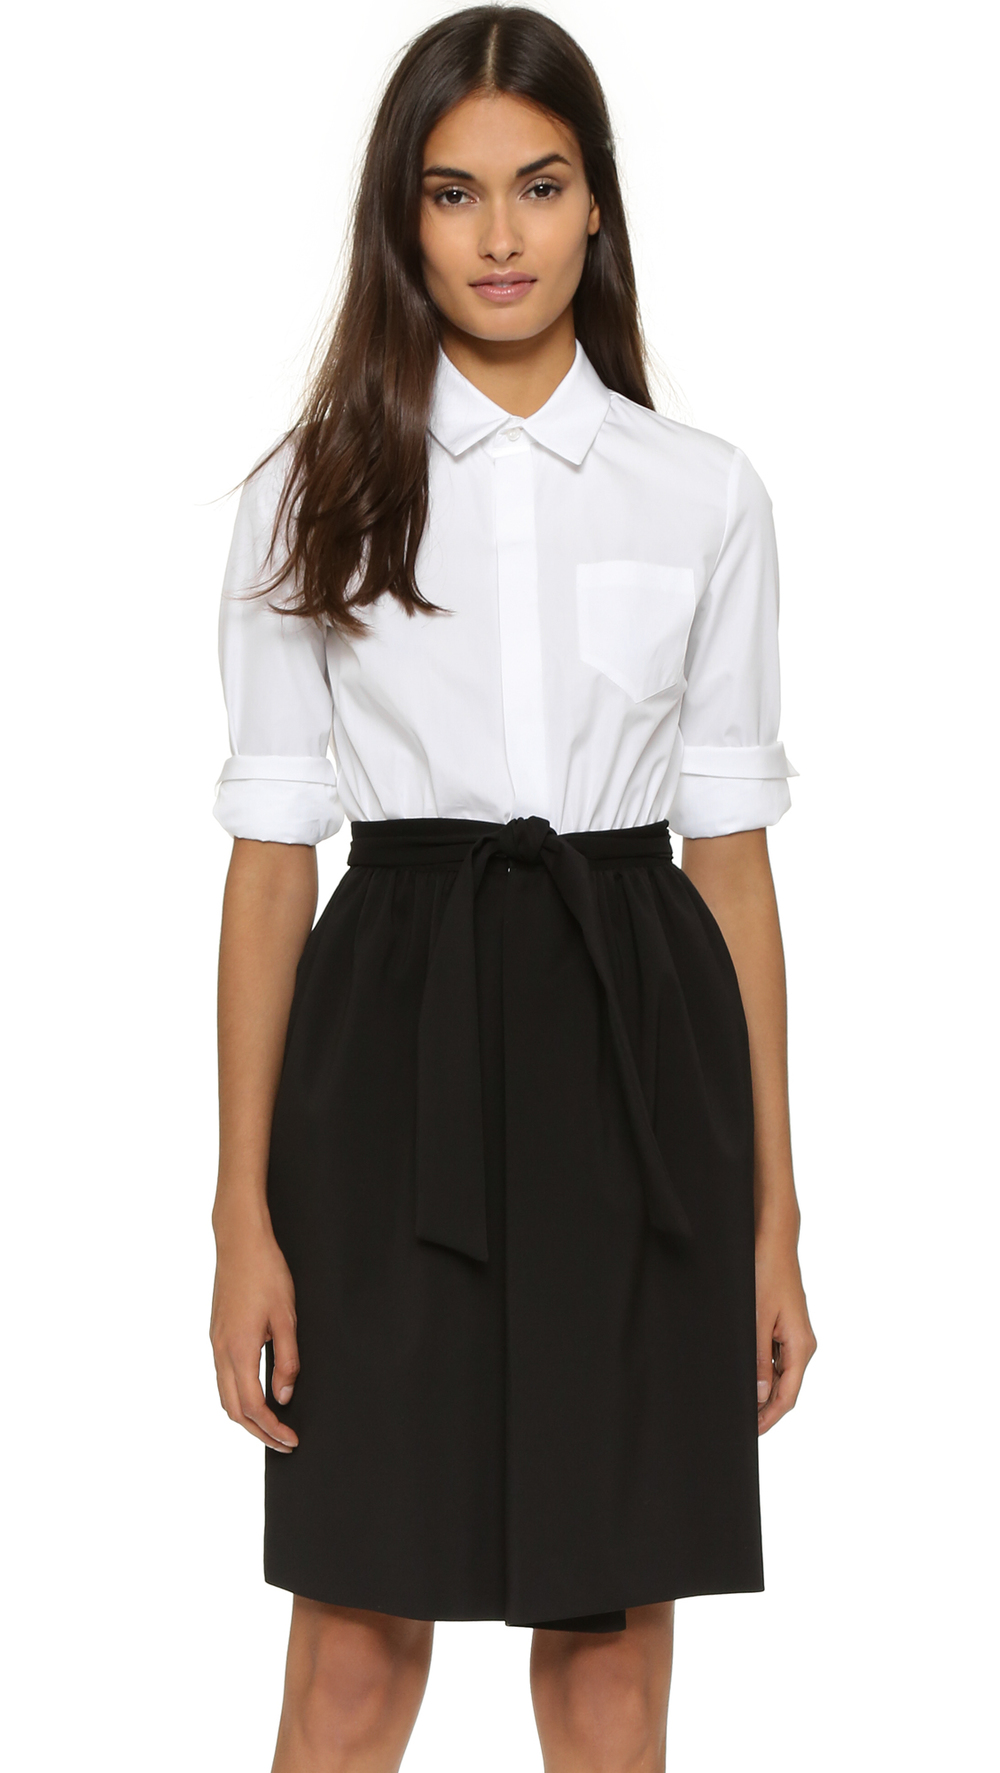 DSQUARED2 Secretary Dress $1,180.00